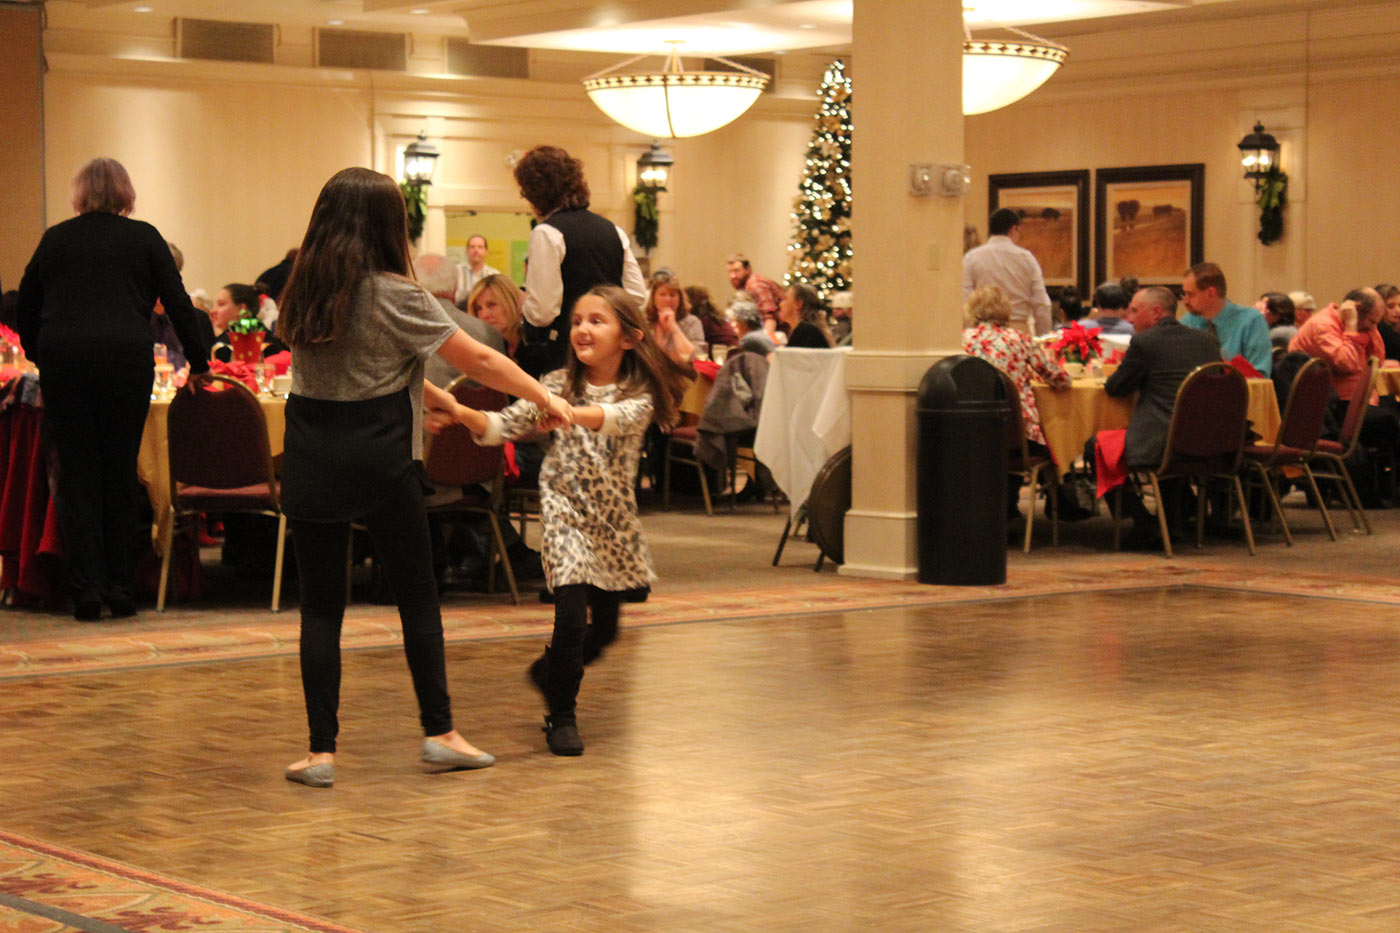 two little girls holding hands swinging around on the dance floor